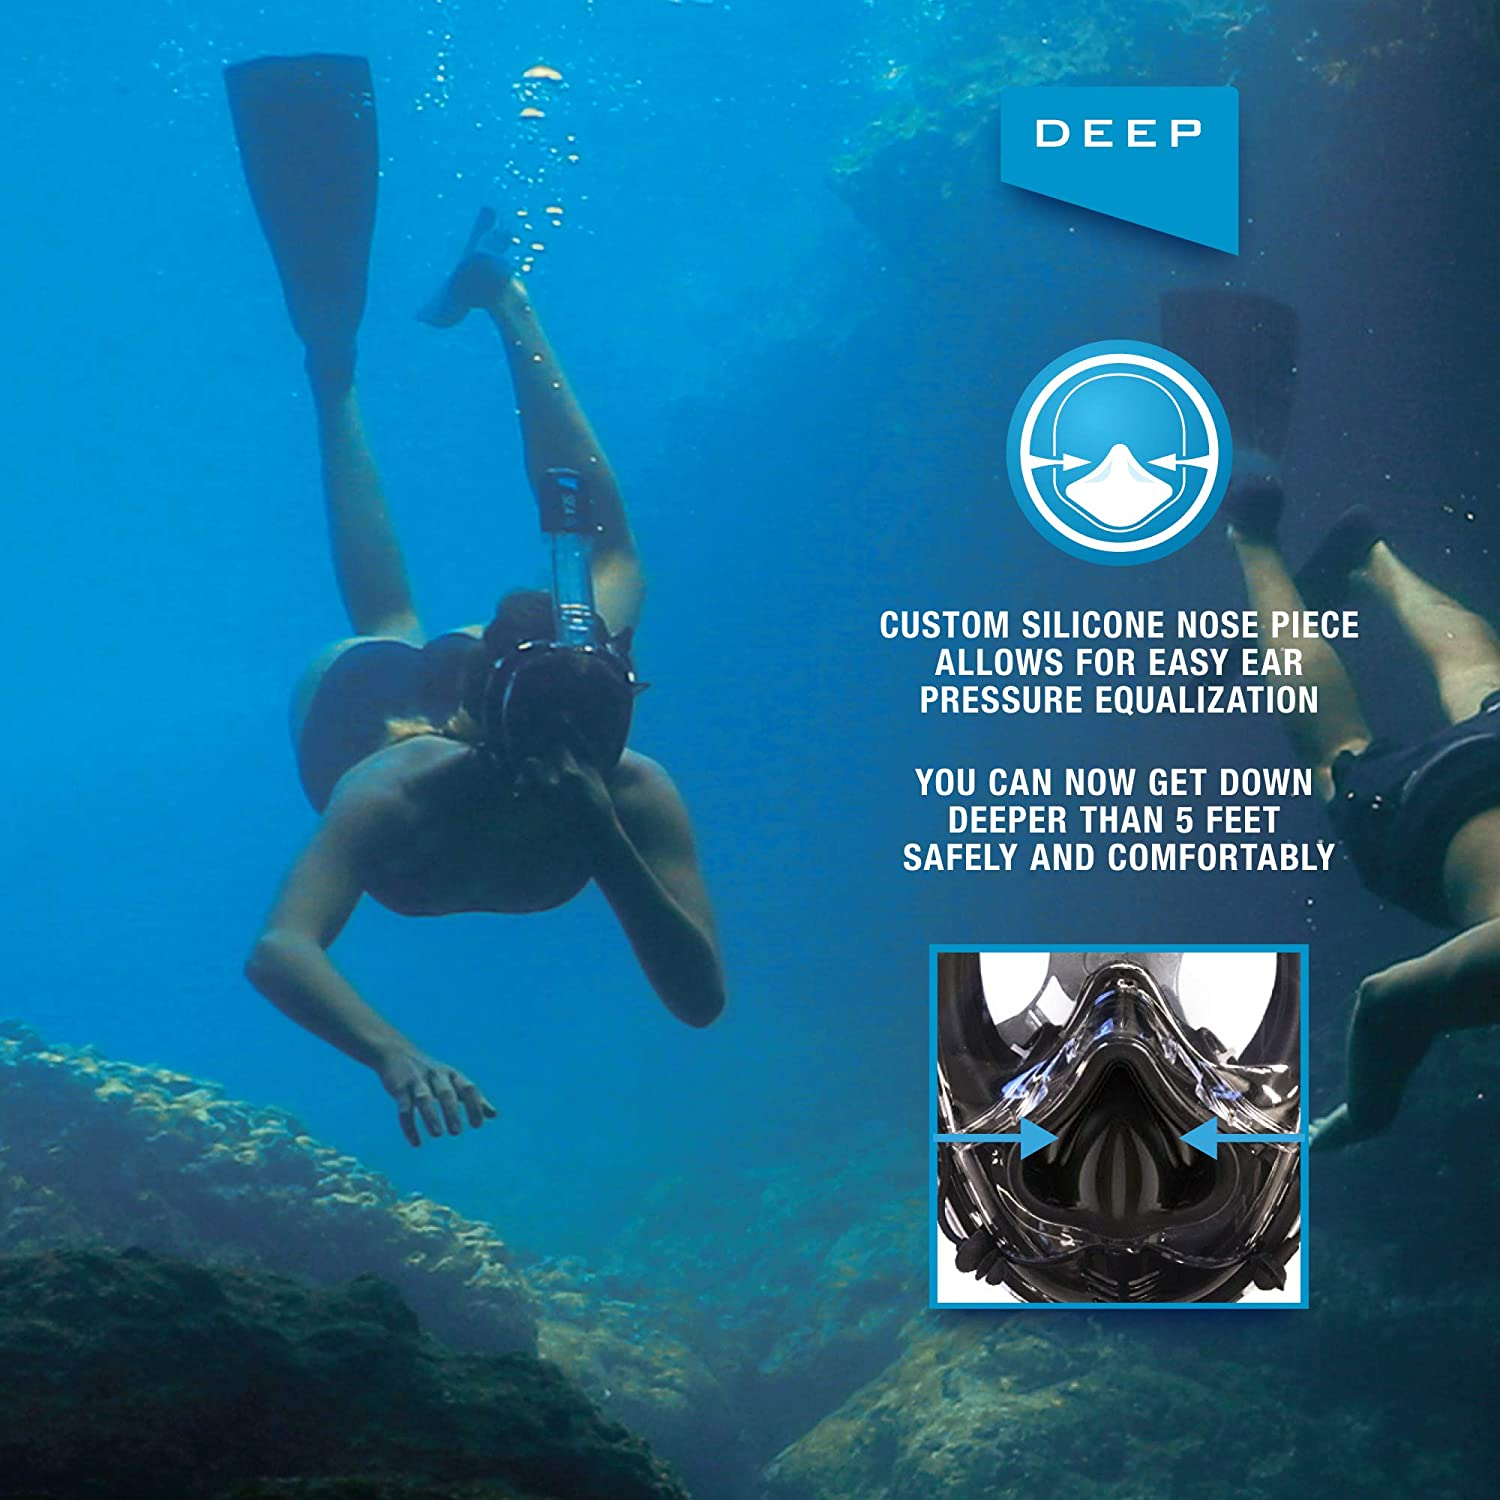 Soft Nose for Diving Only Full Face Snorkel Mask Designed to Protect Against Dangerous CO2 Build-Up Panoramic View Camera Mount Anti-Fog Deep Sea O2 Universal Size- Kids to Adult